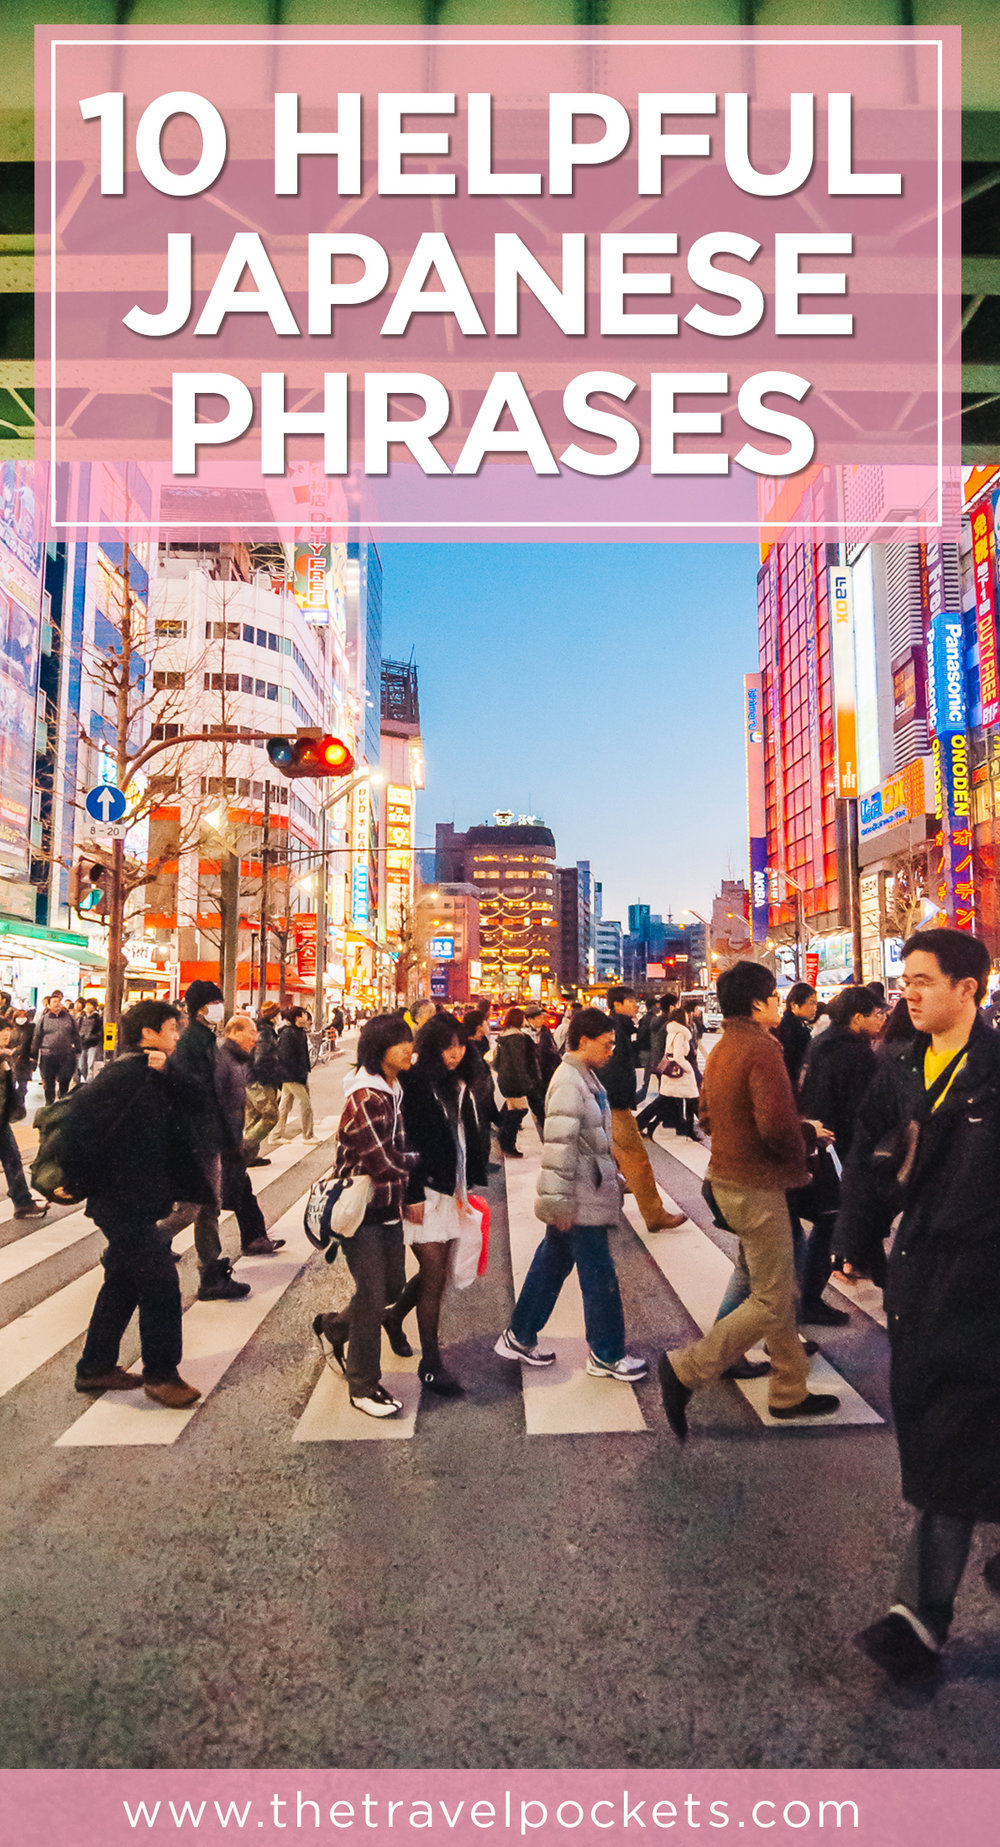 Japanese Phrases www.thetravelpockets.com